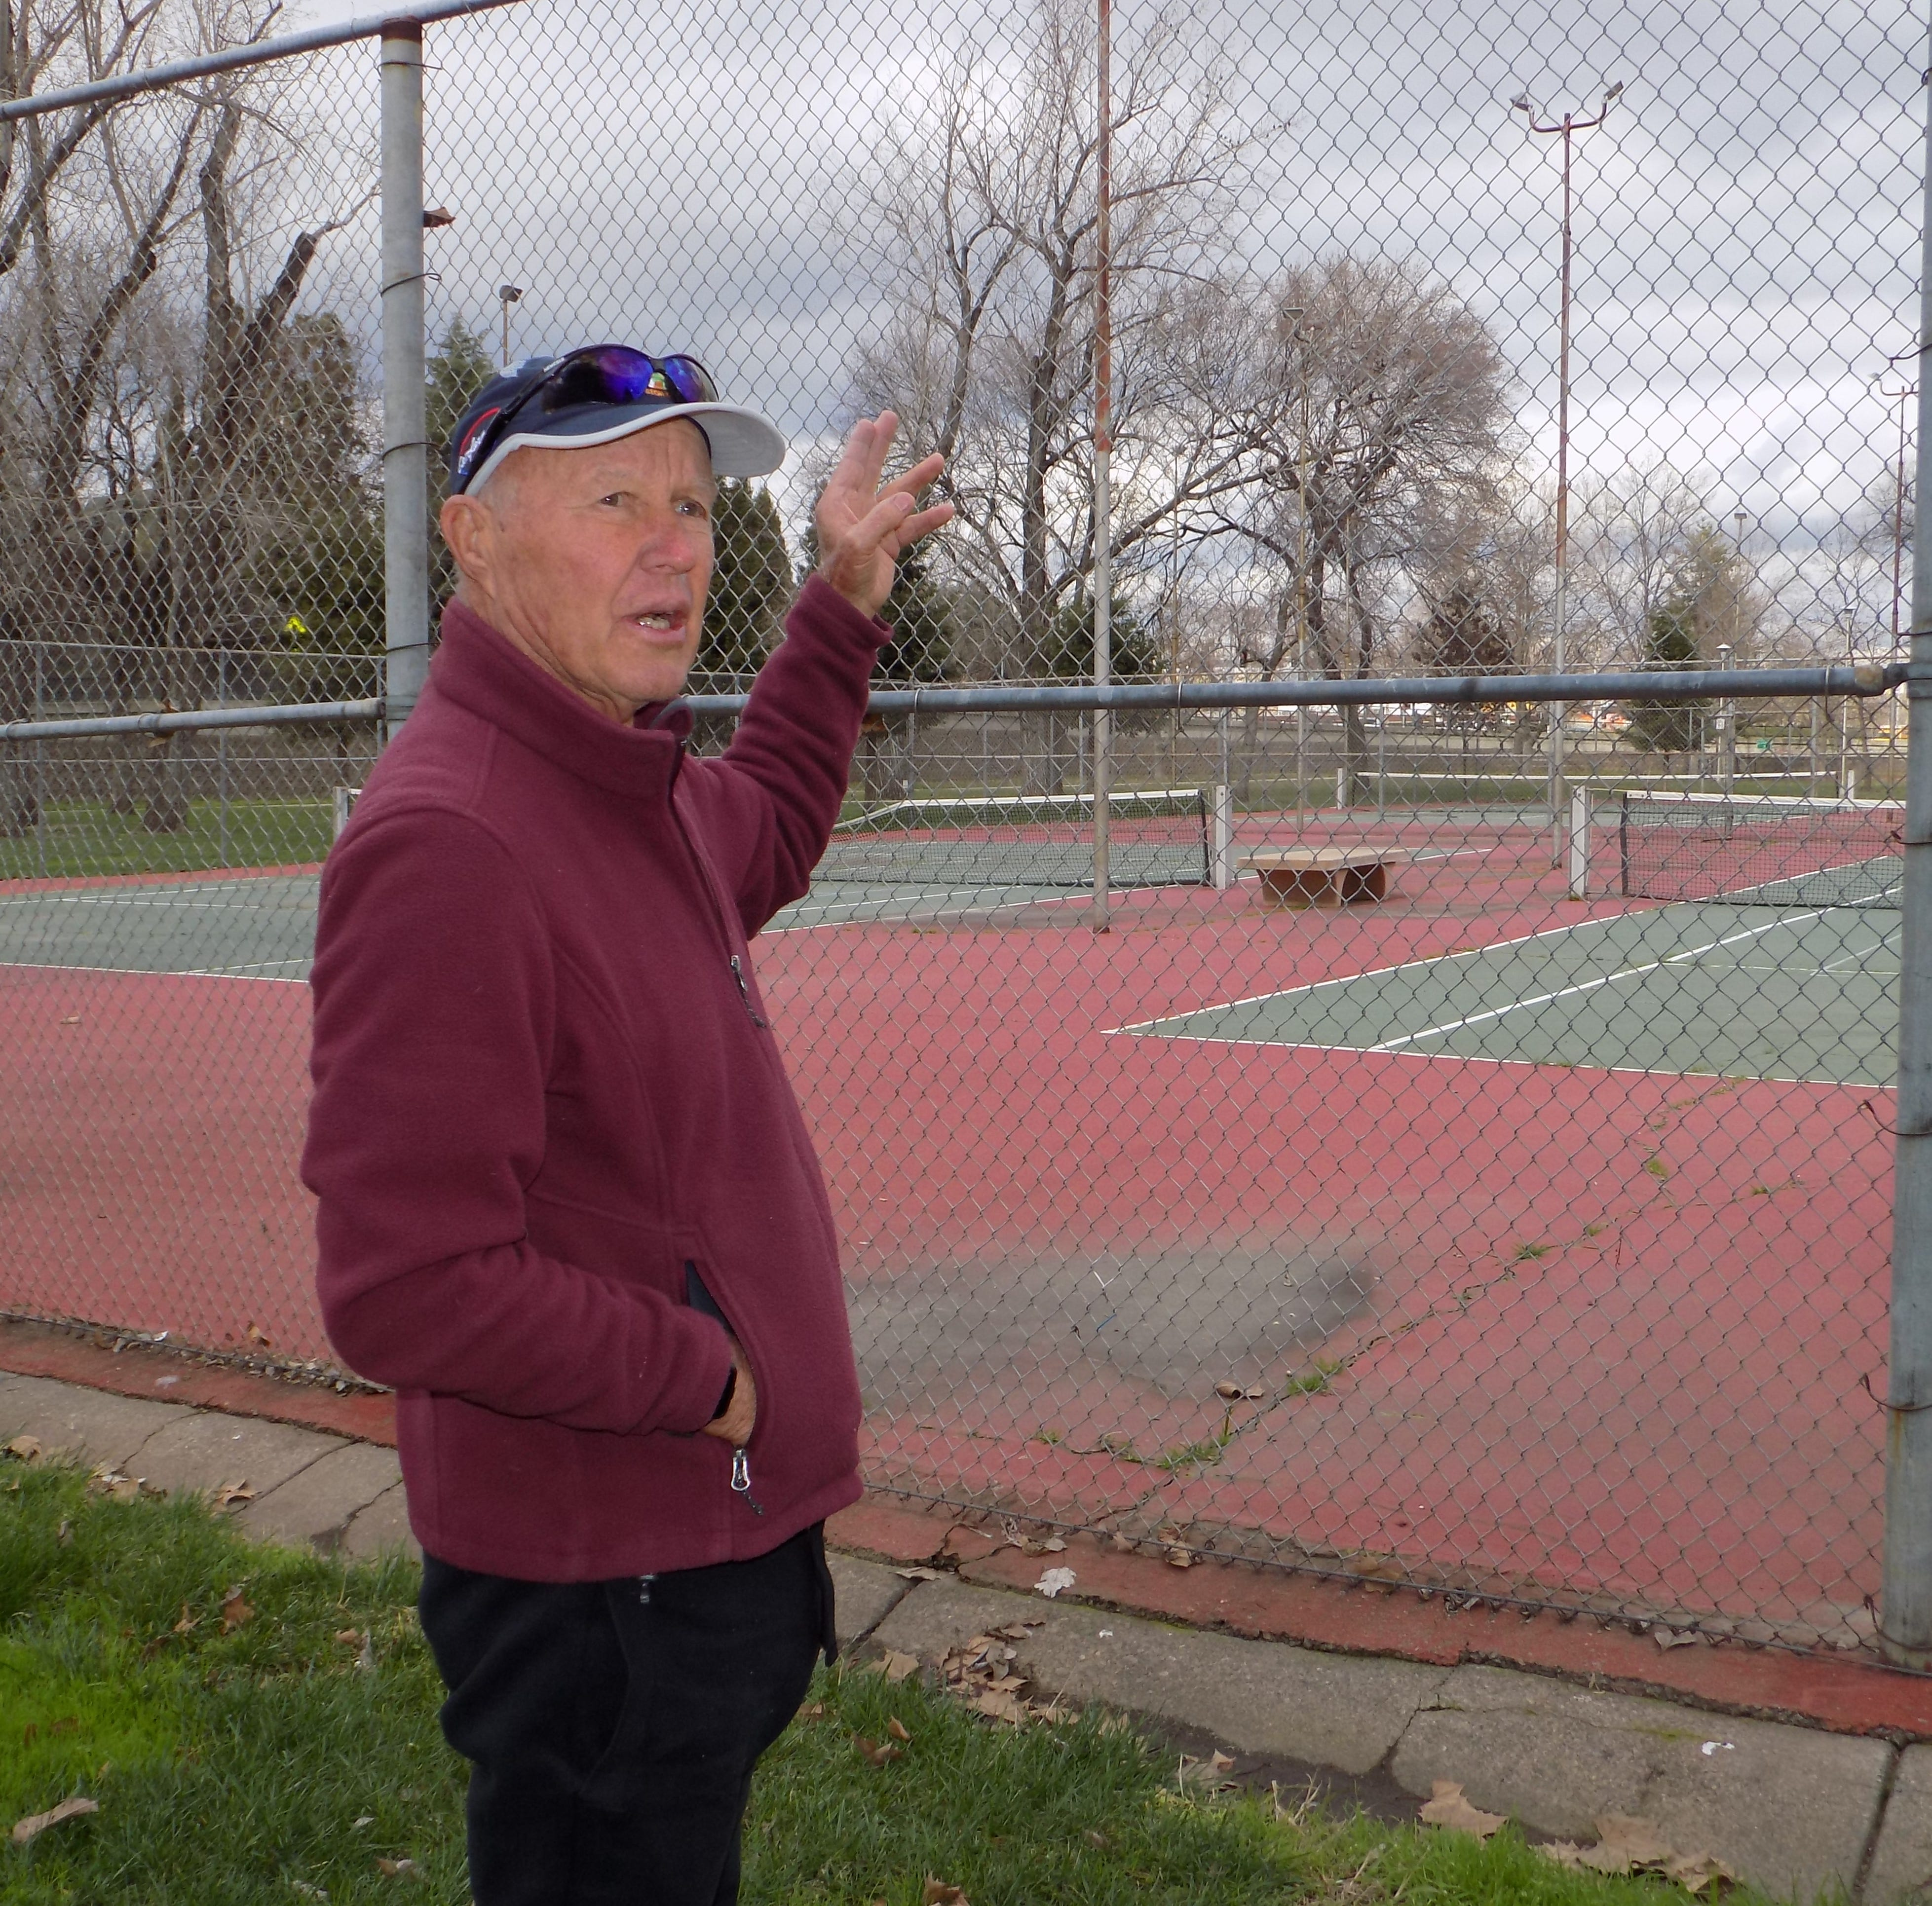 Tennis players, dog trainers to make pitch for South City Park